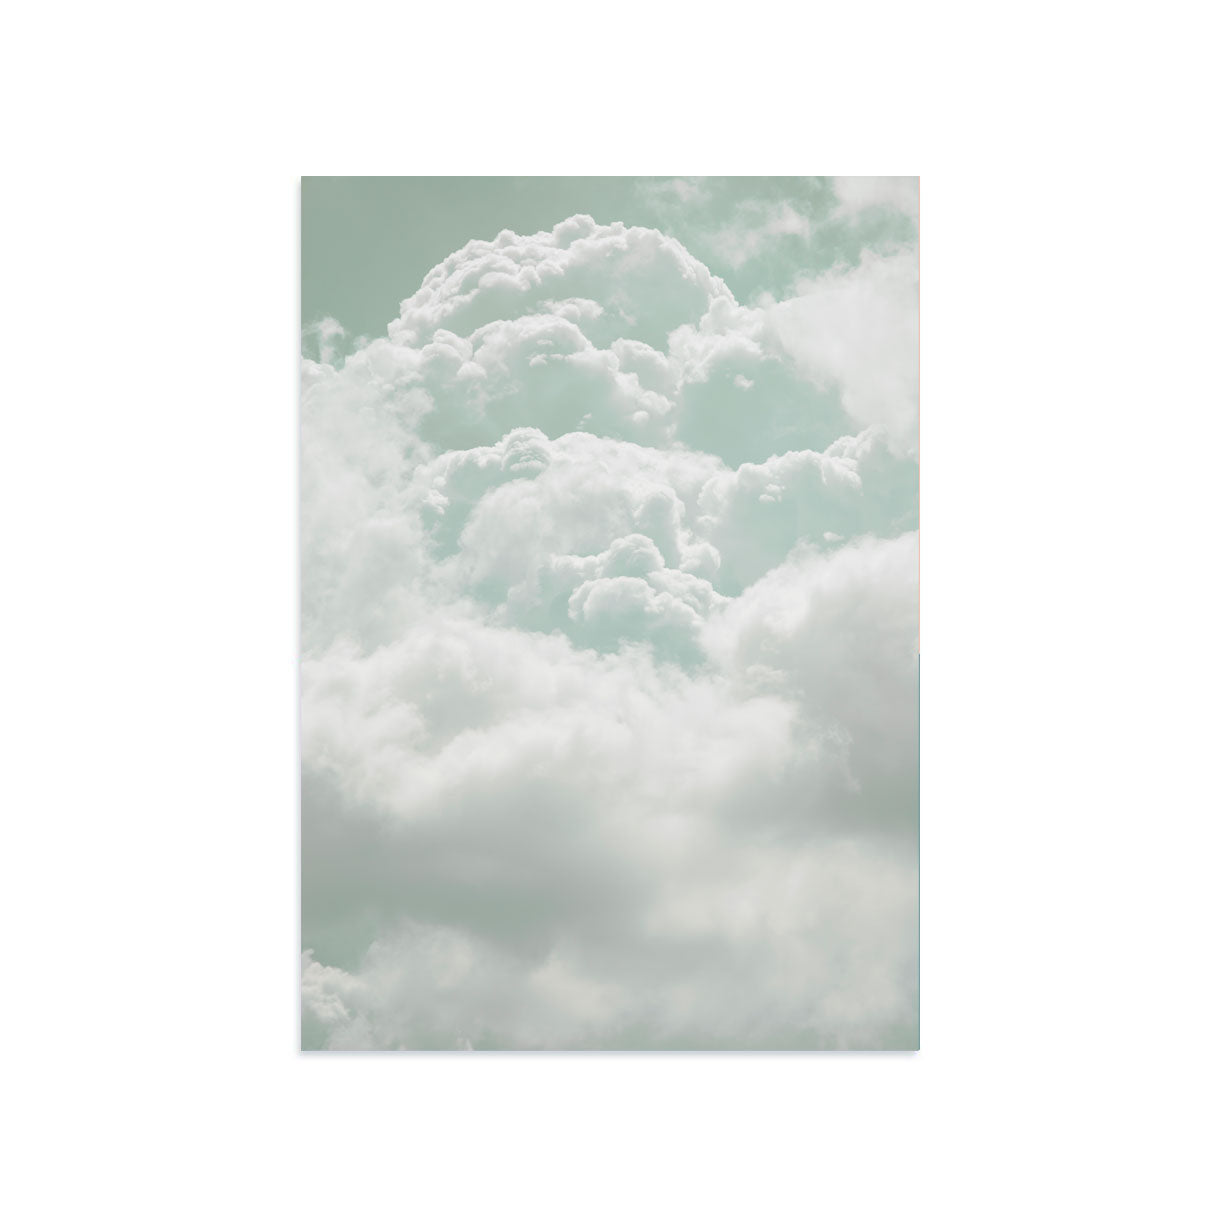 Clouds 7 | Tal Paz-Fridman | Limited Edition Prints | Poster Child Prints | Photography